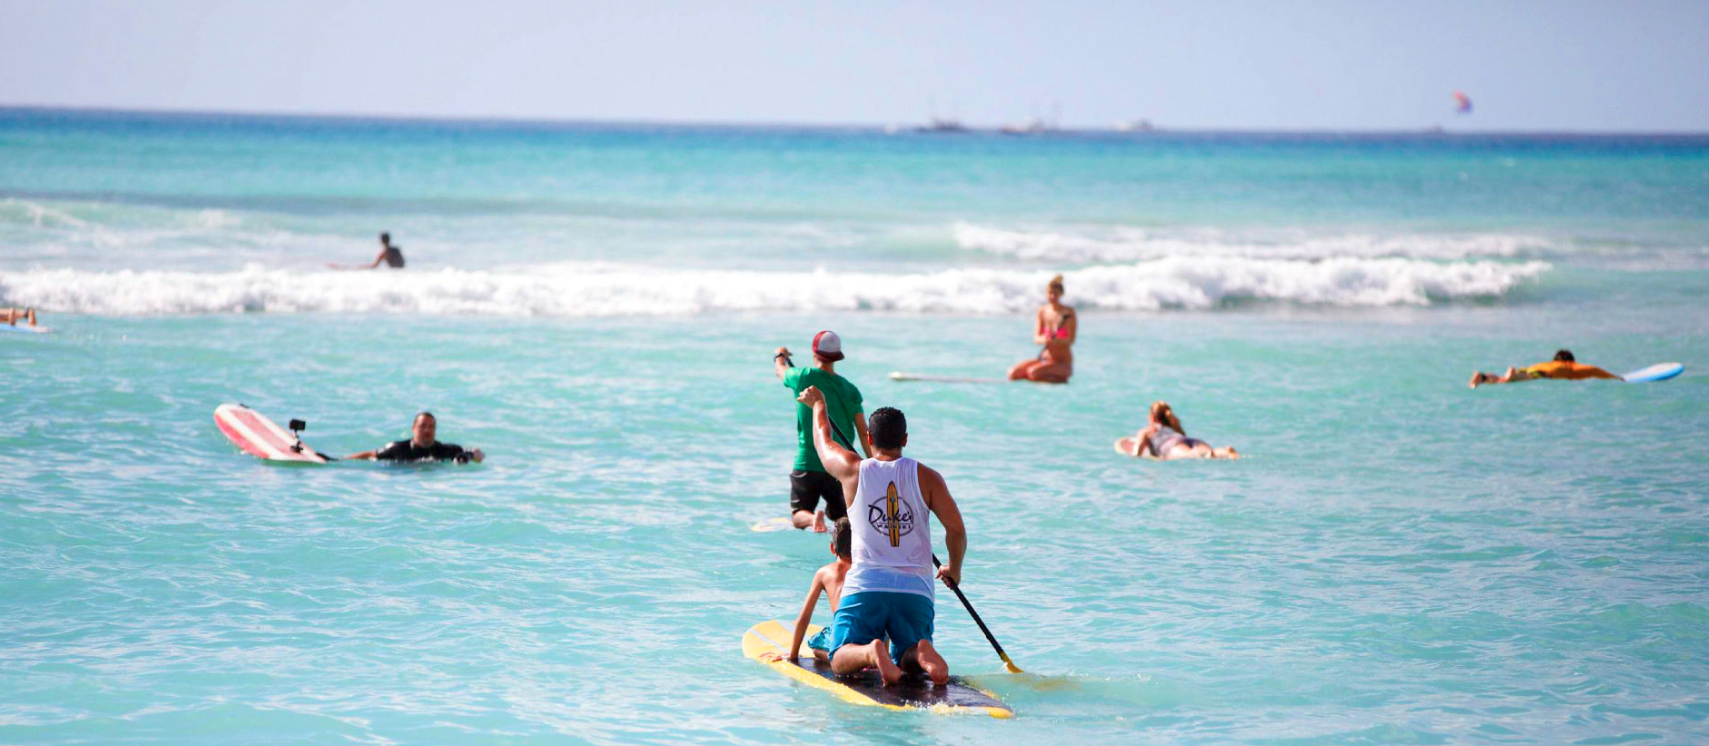 People in the ocean surfing and paddle boarding